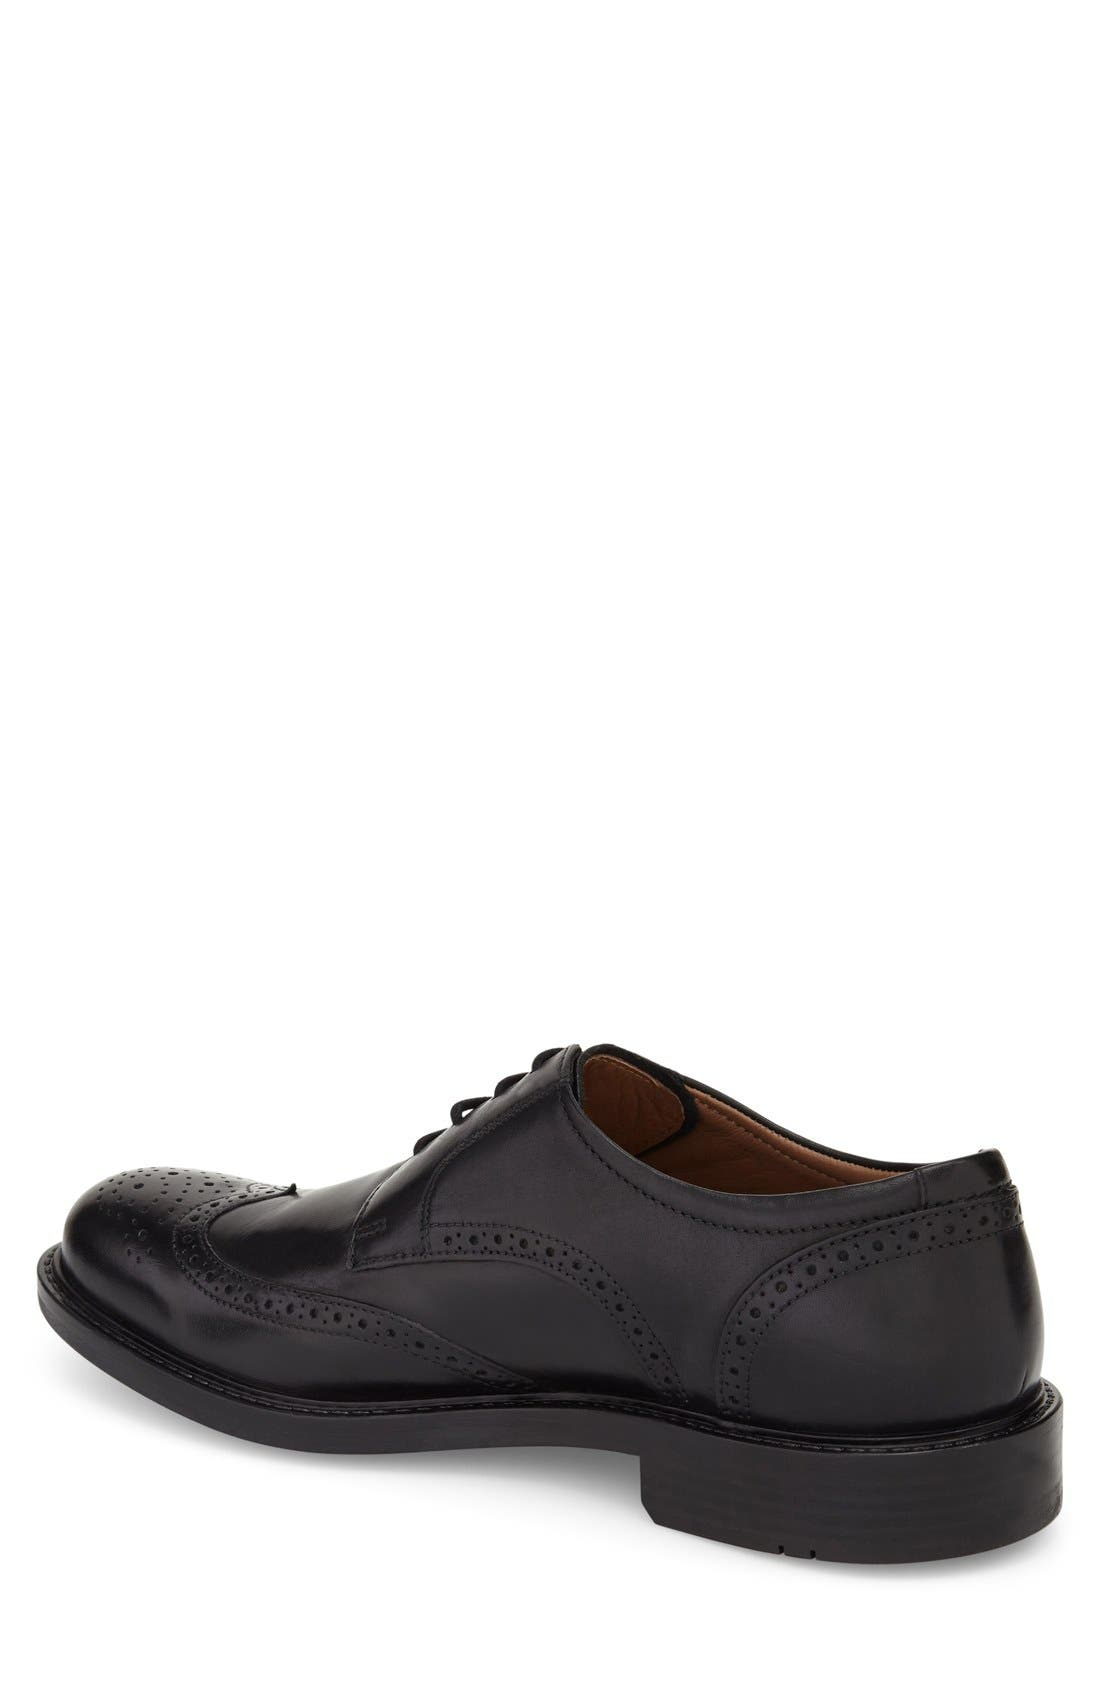 Tabor Wingtip,                             Alternate thumbnail 2, color,                             BLACK LEATHER